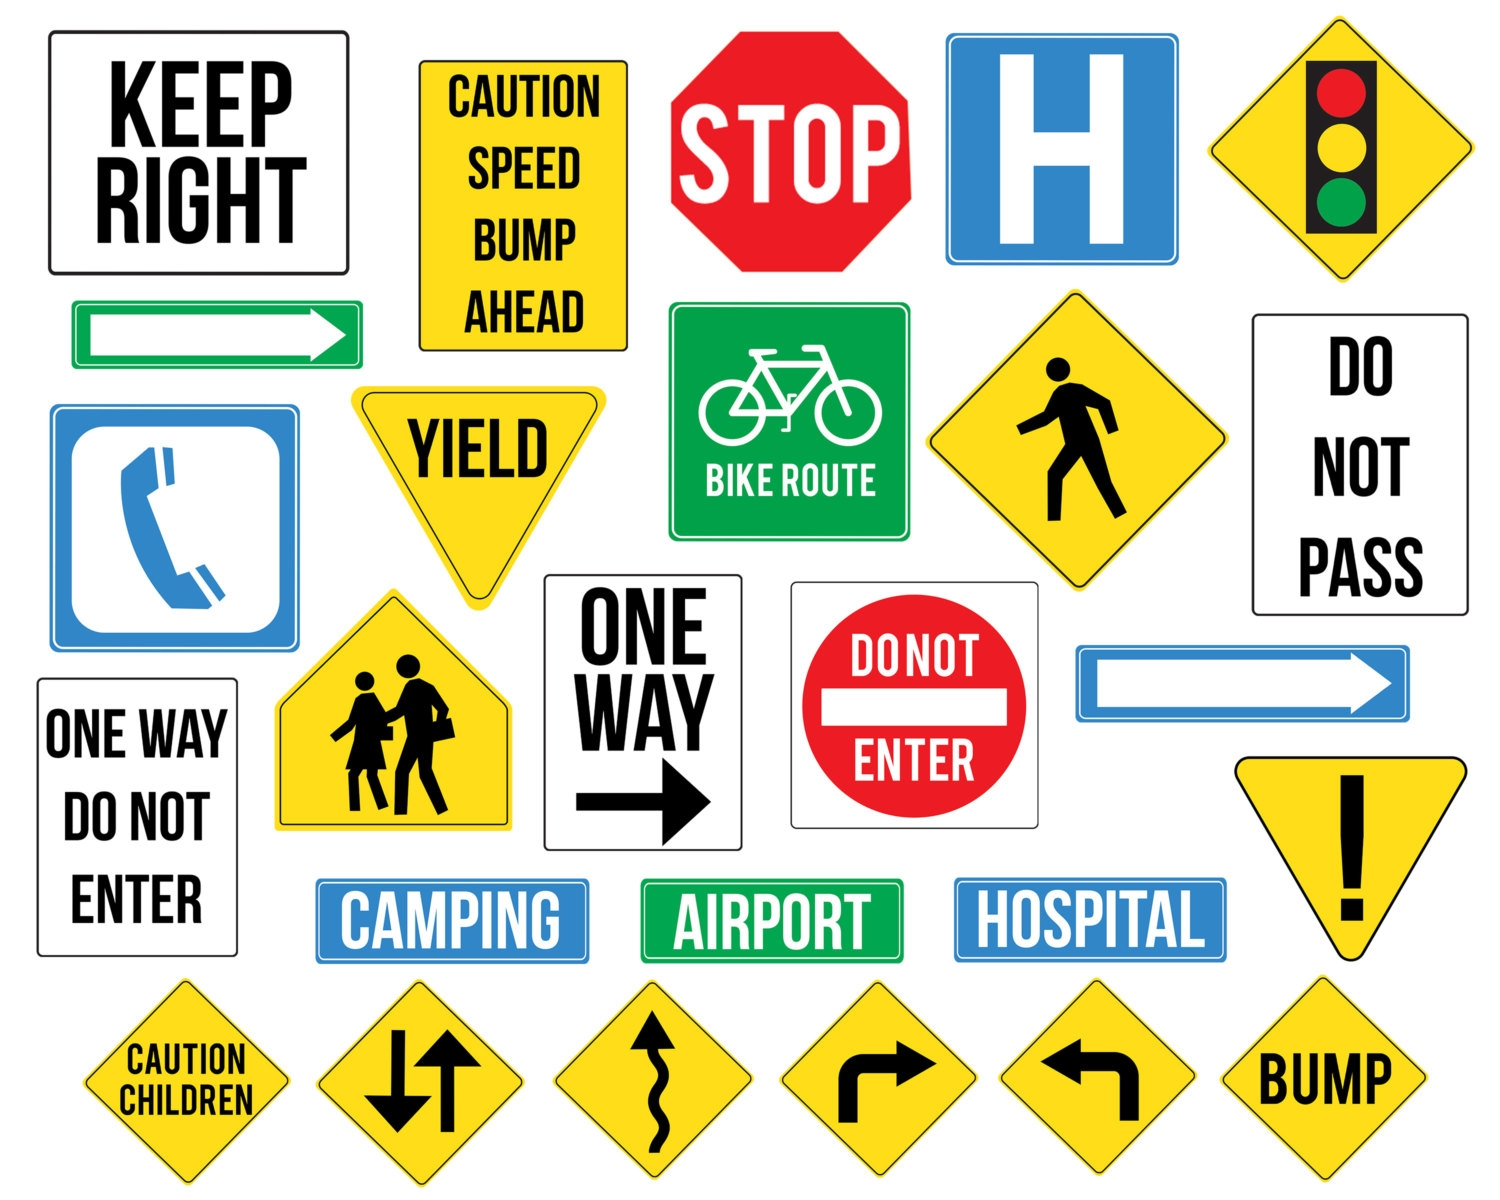 Street traffic clipart - Clipground